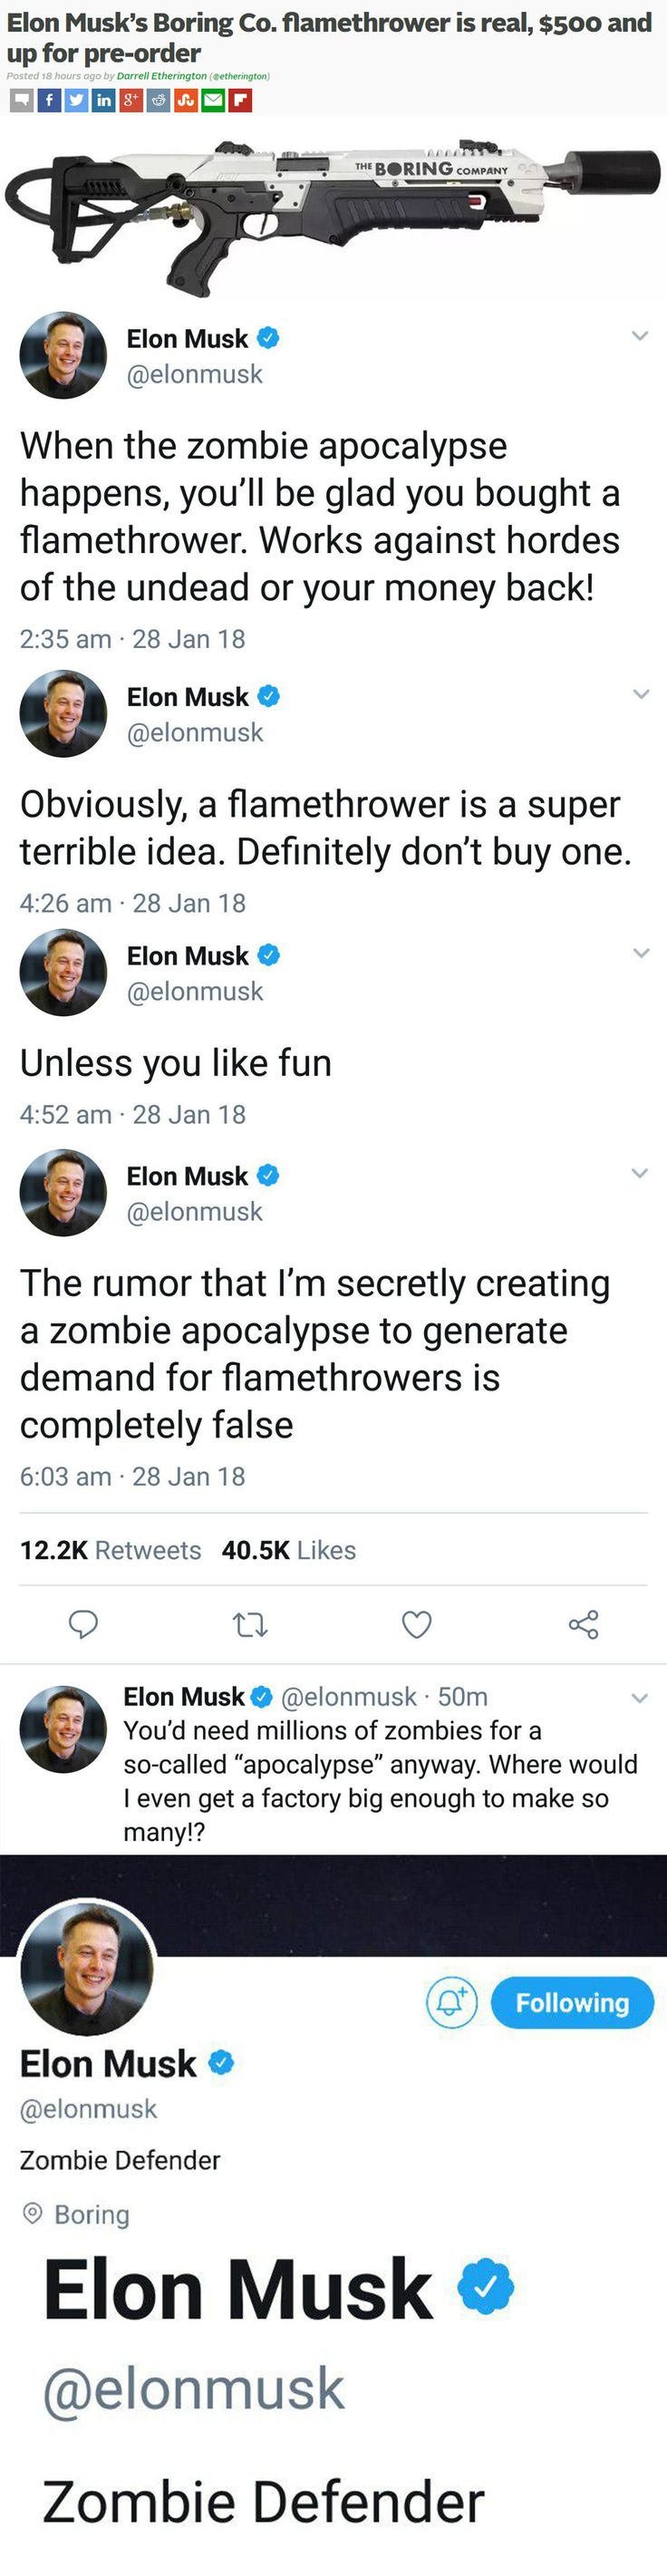 Raising money for his tunneling business, The Boring Company, Elon Musk sold out of flamethrowers in just four days.